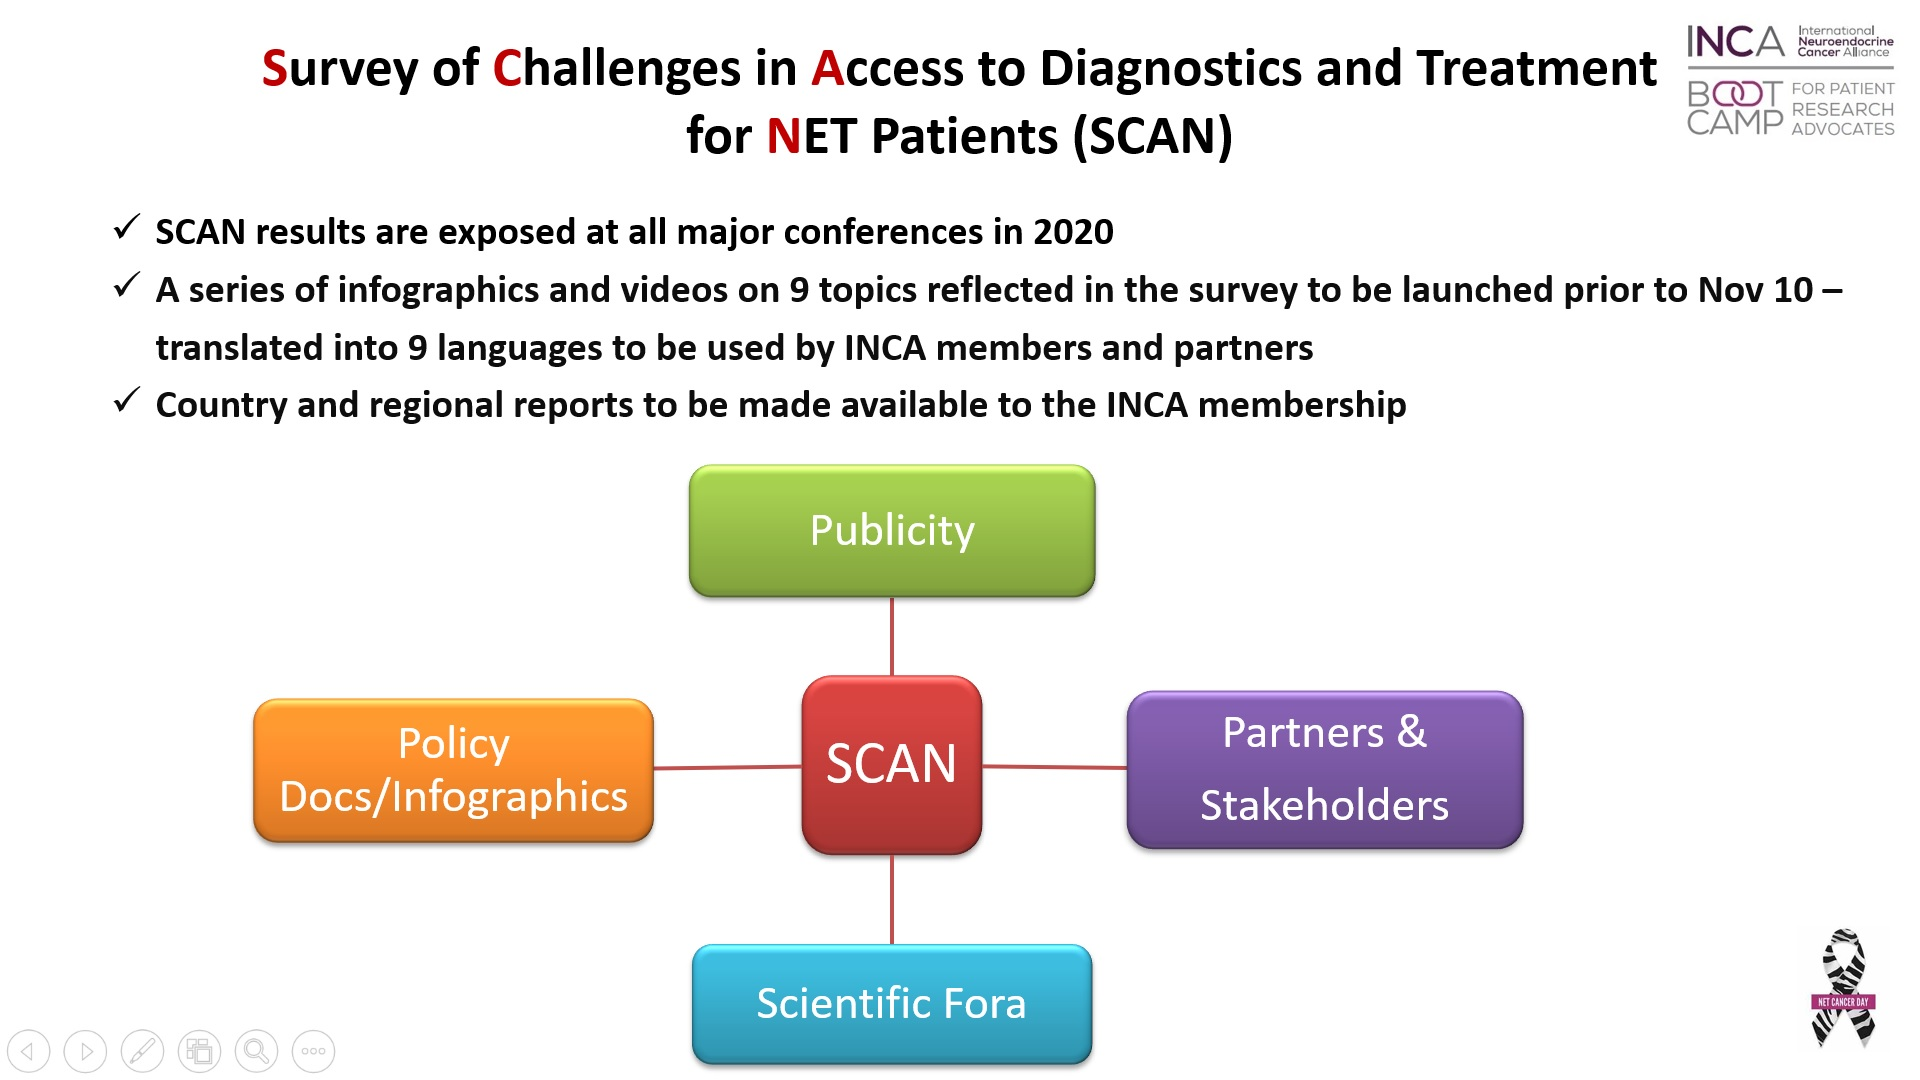 Evidence-Based Patient Advocacy at the INCA Boot Camp